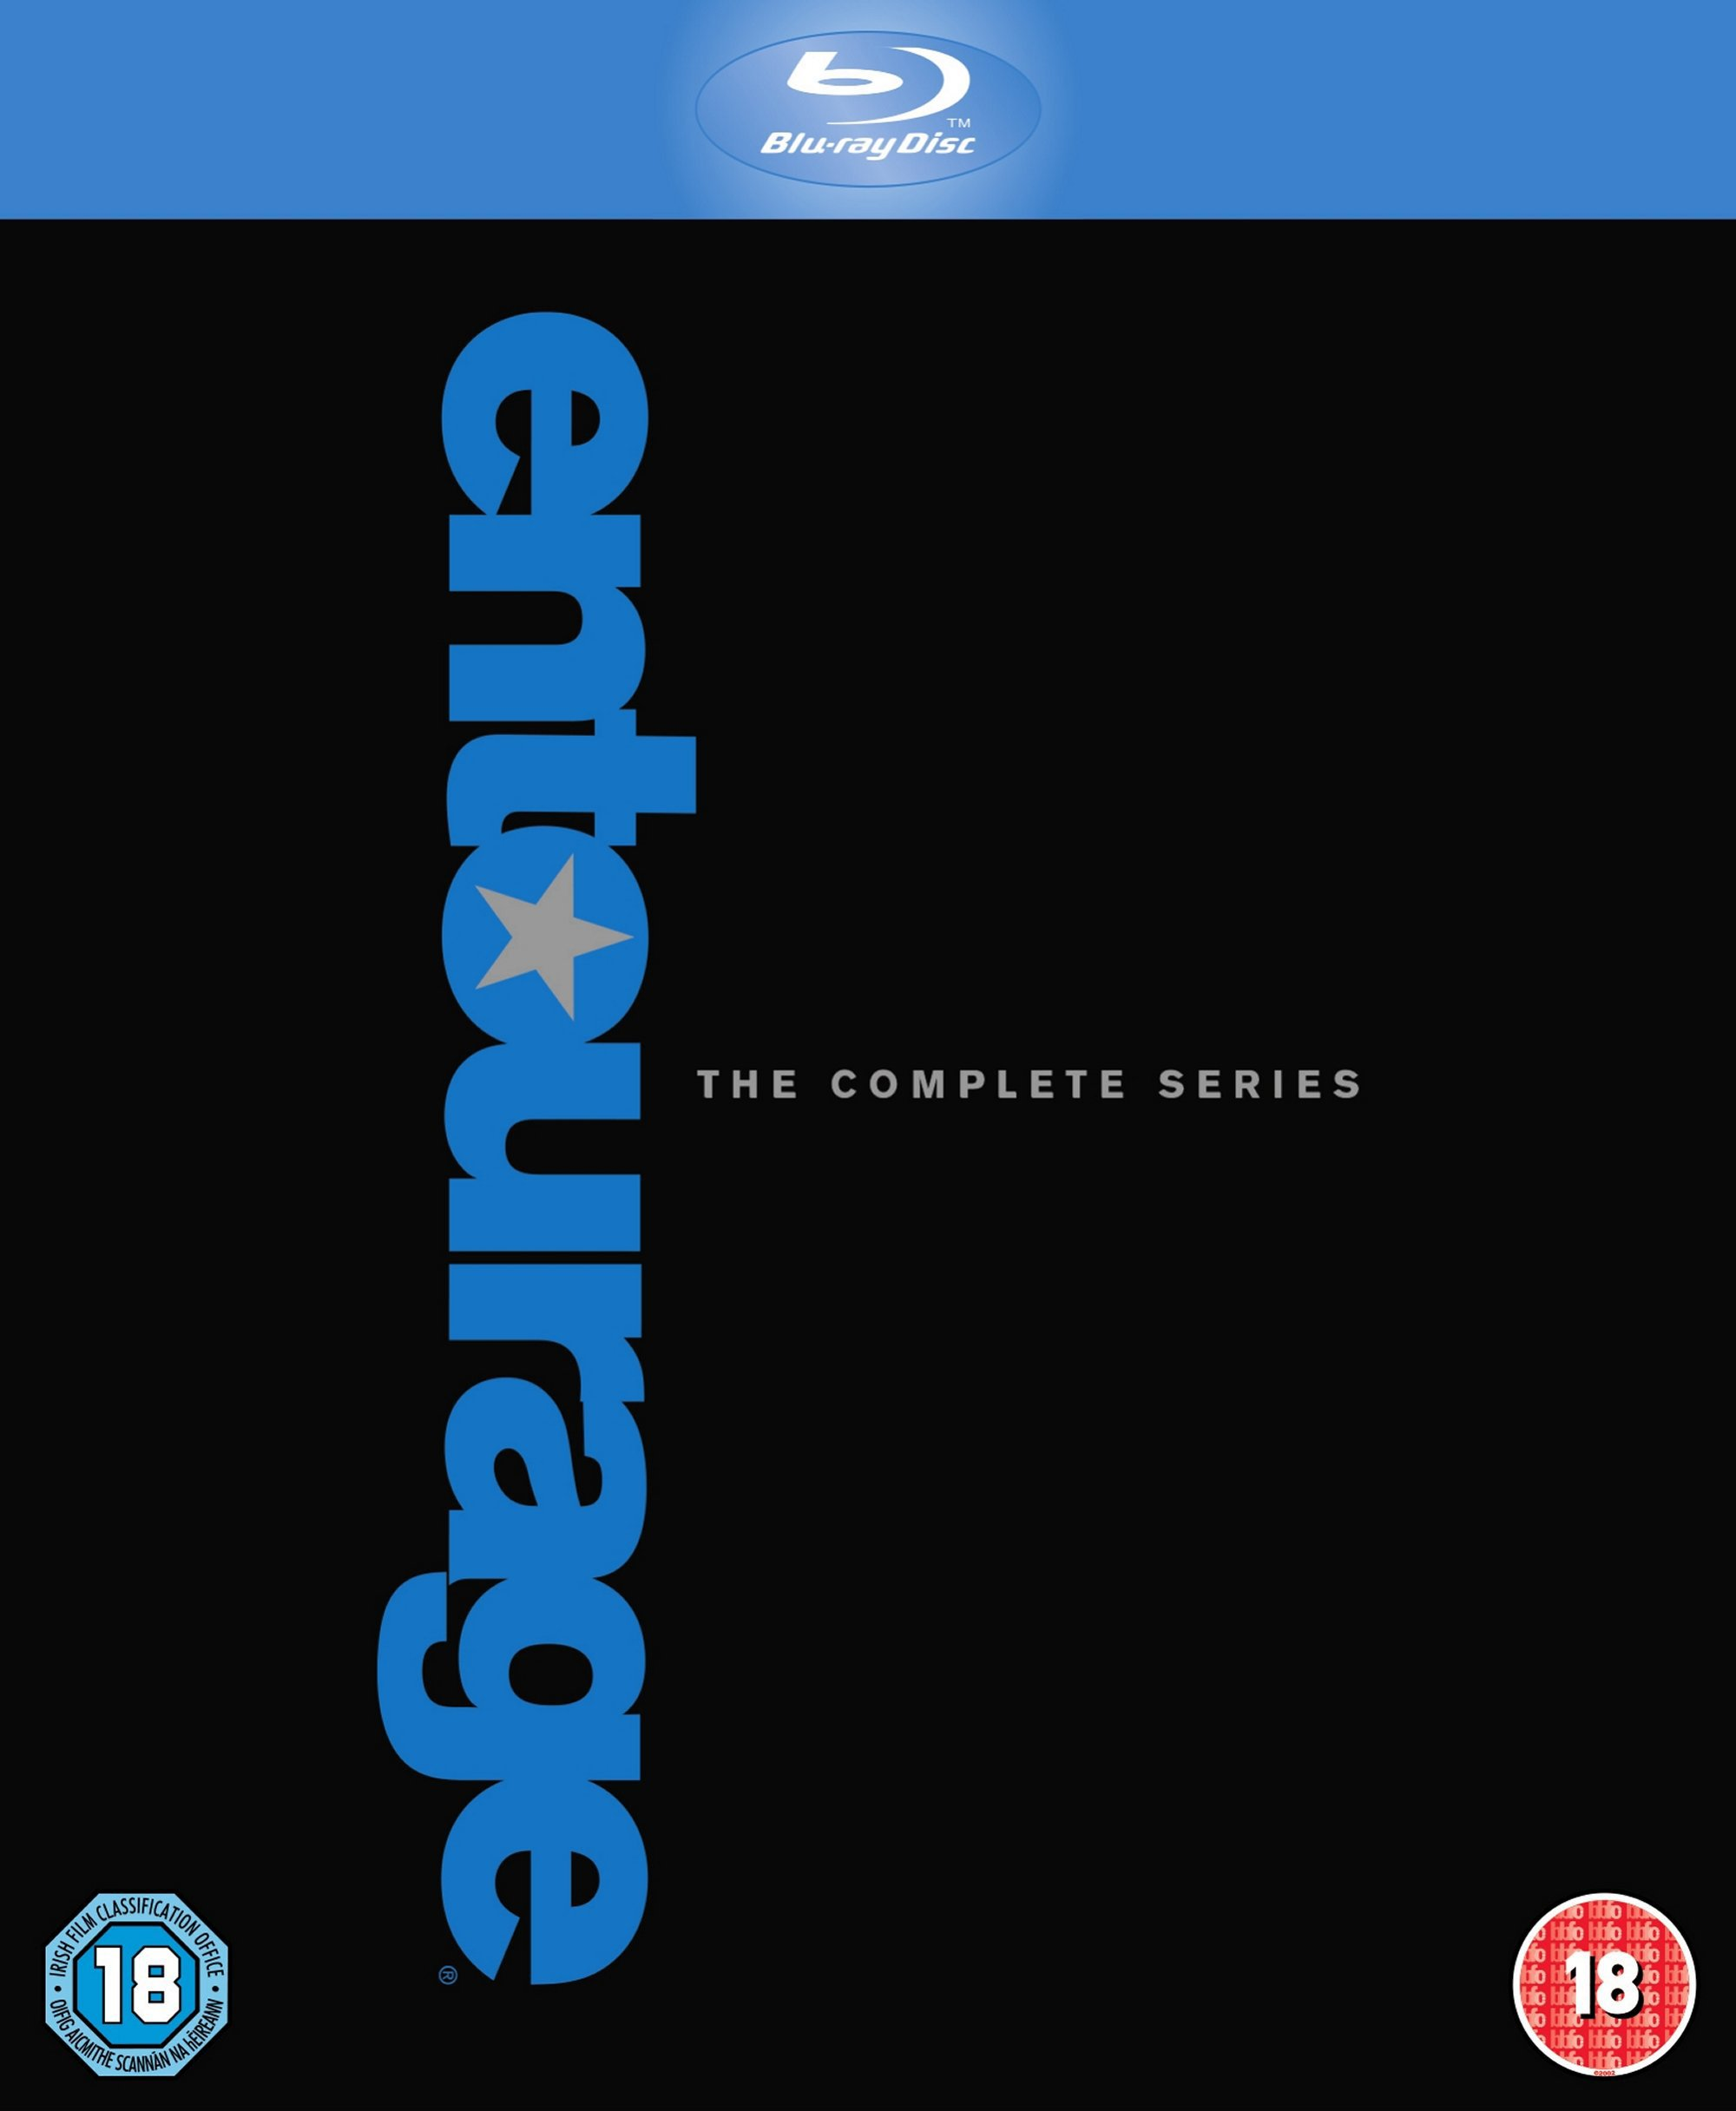 Entourage: Complete Series (Seasons 1-8 Bundle) [Blu-ray]